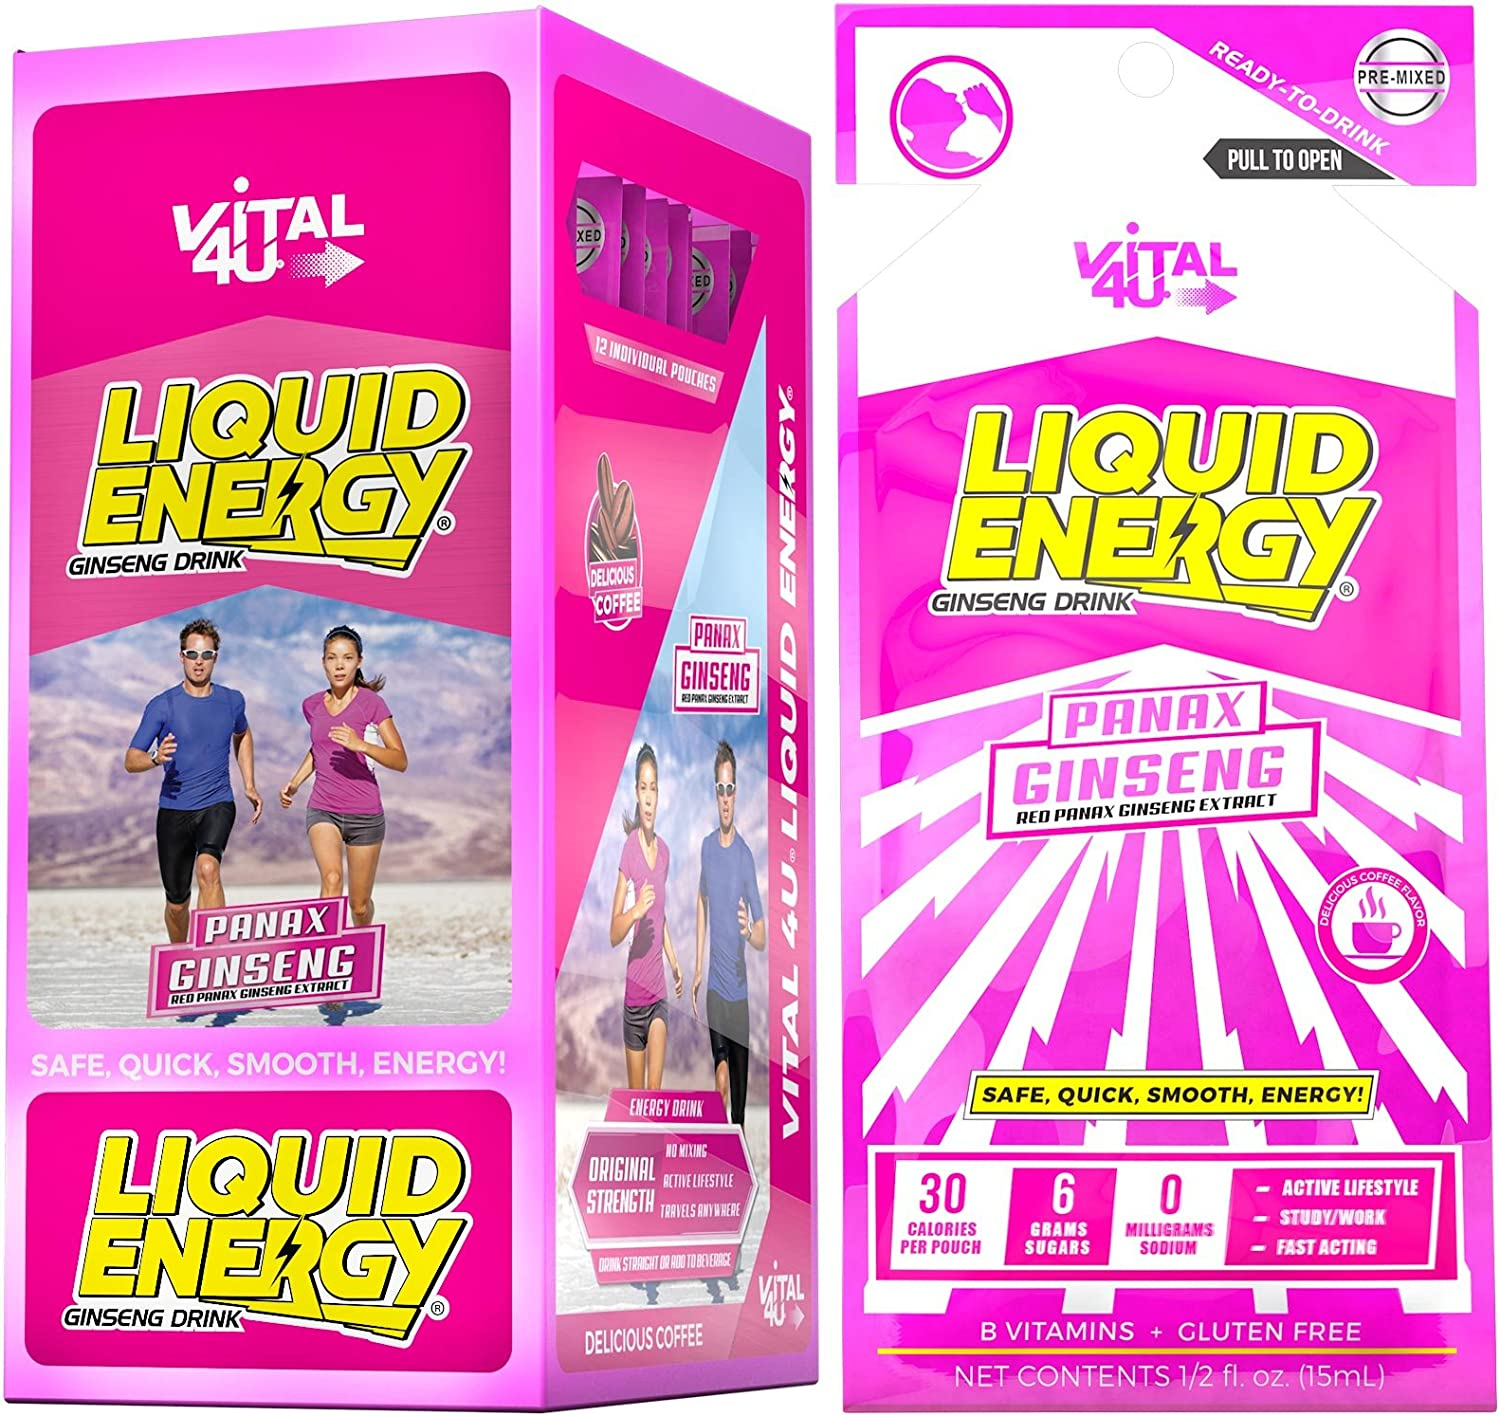 Vital 4U Liquid Energy – Ginseng Energy Shot, Delicious Coffee Flavor, 24 Count